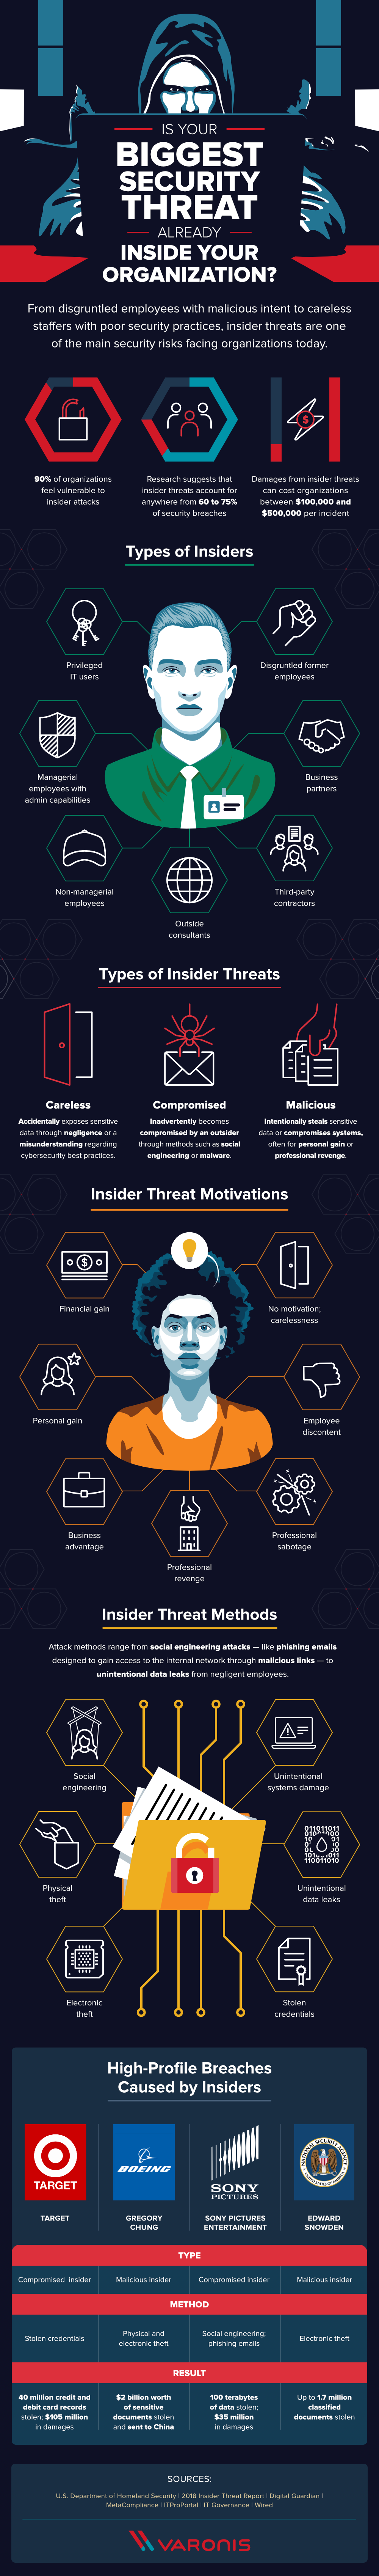 Pin By C Kirk On Grey Hat Cyber Security Awareness Cyber Awareness Cyber Threat Intelligence